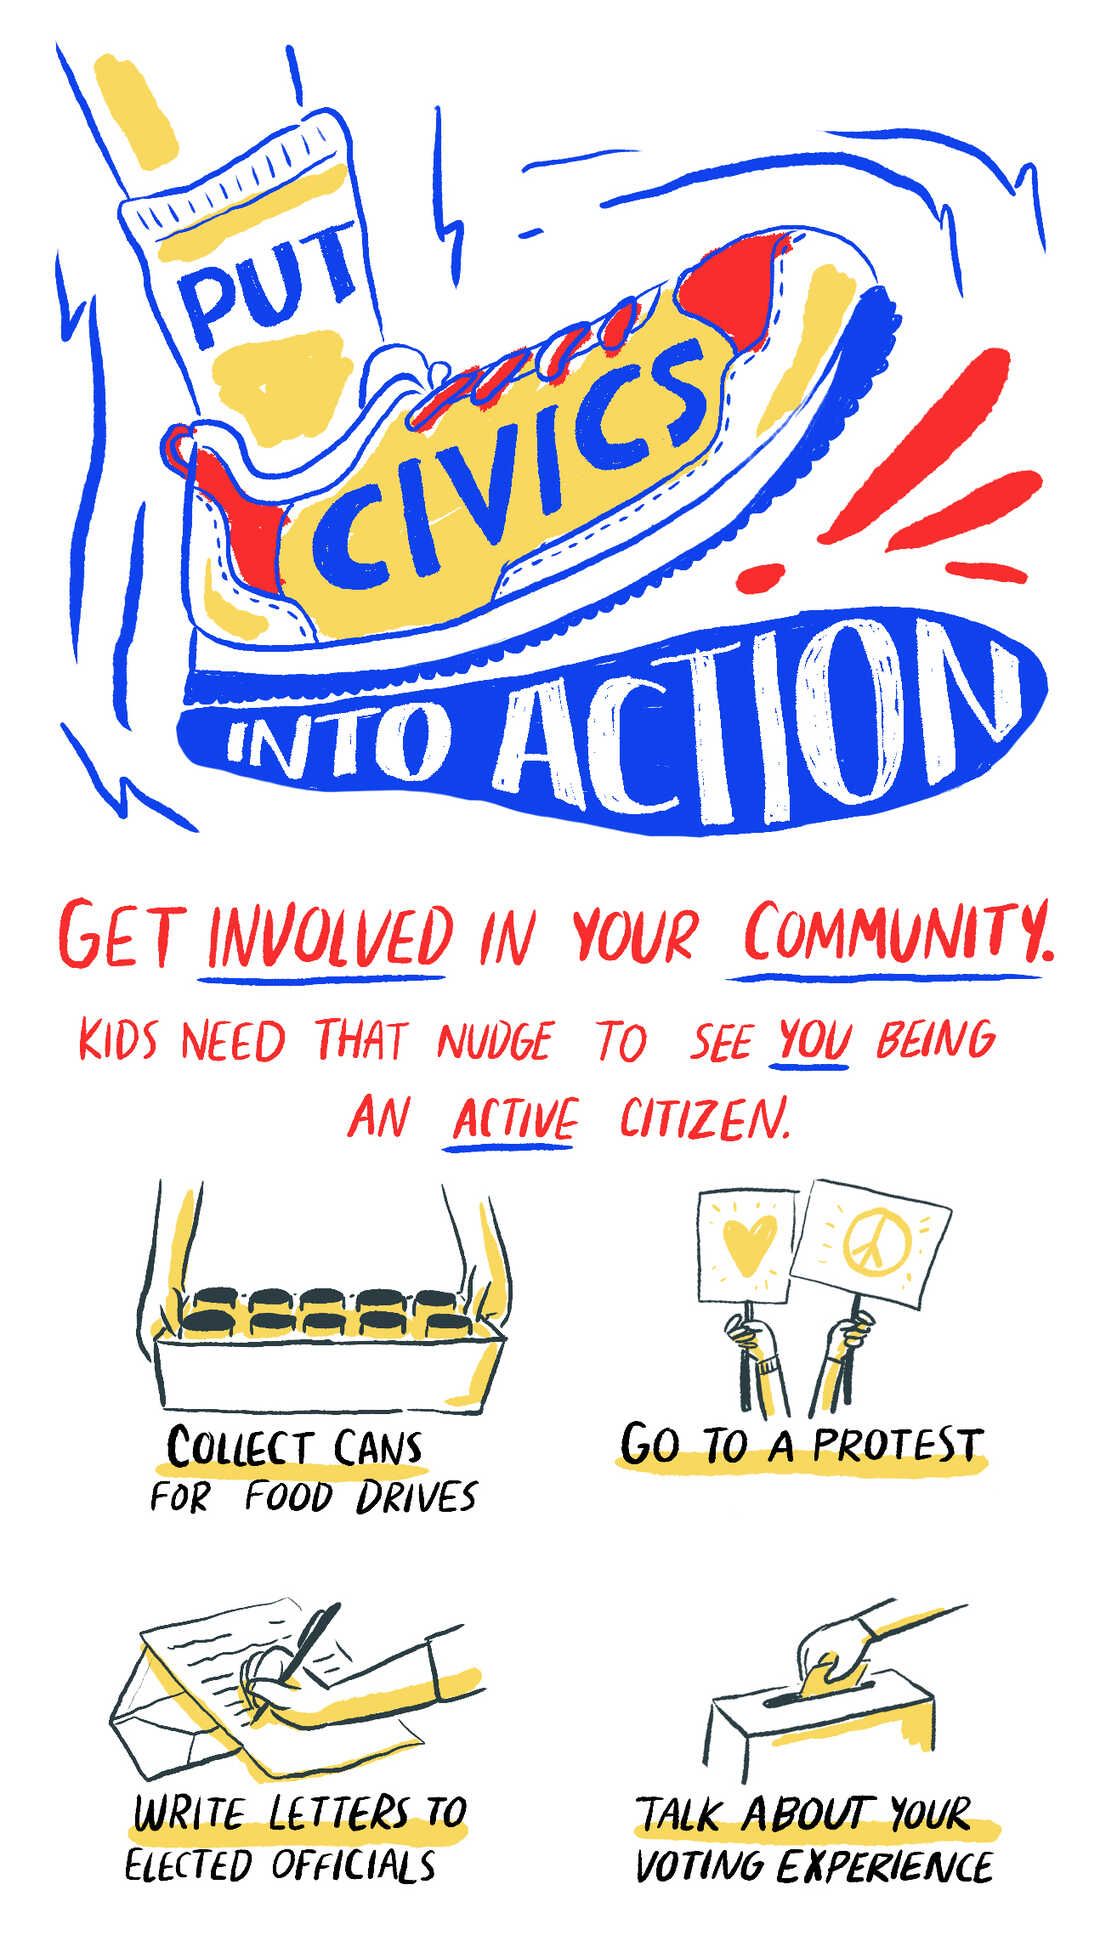 Put civics into action! Get involved in your community. Kids need that nudge to see you being an active citizen.